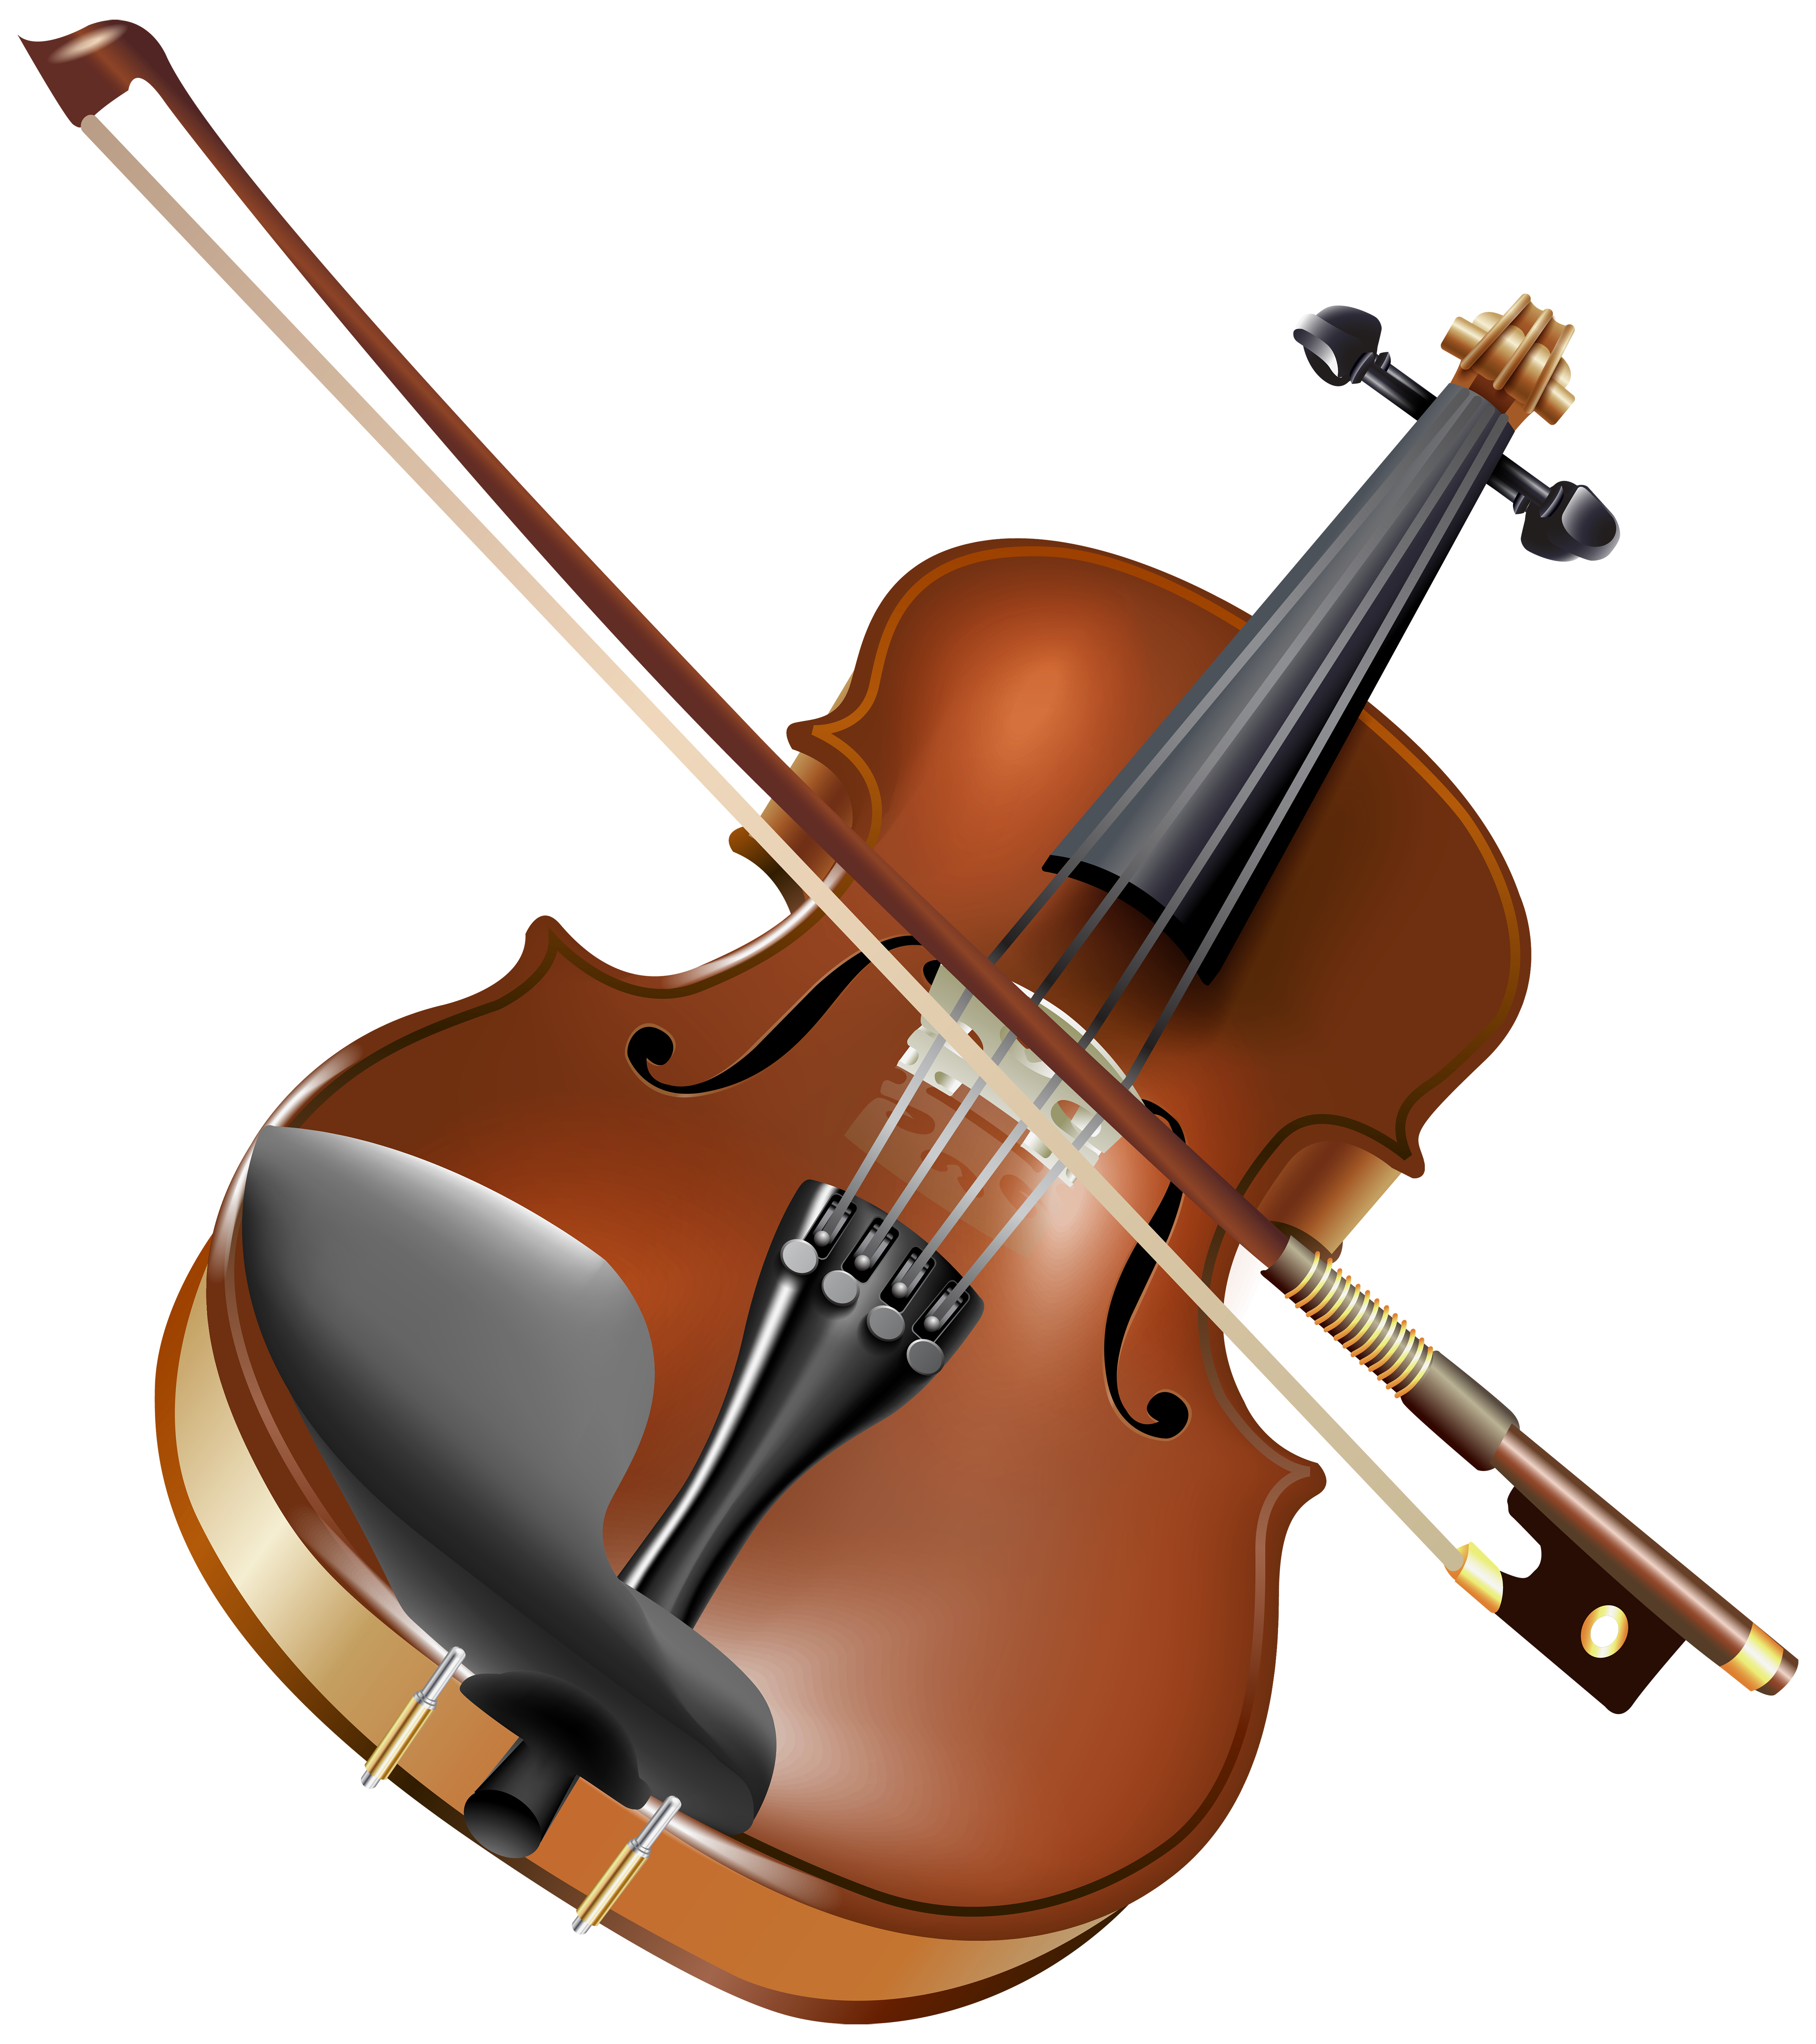 Christmas music clipart violin svg royalty free library Violin PNG Clipart - Best WEB Clipart svg royalty free library